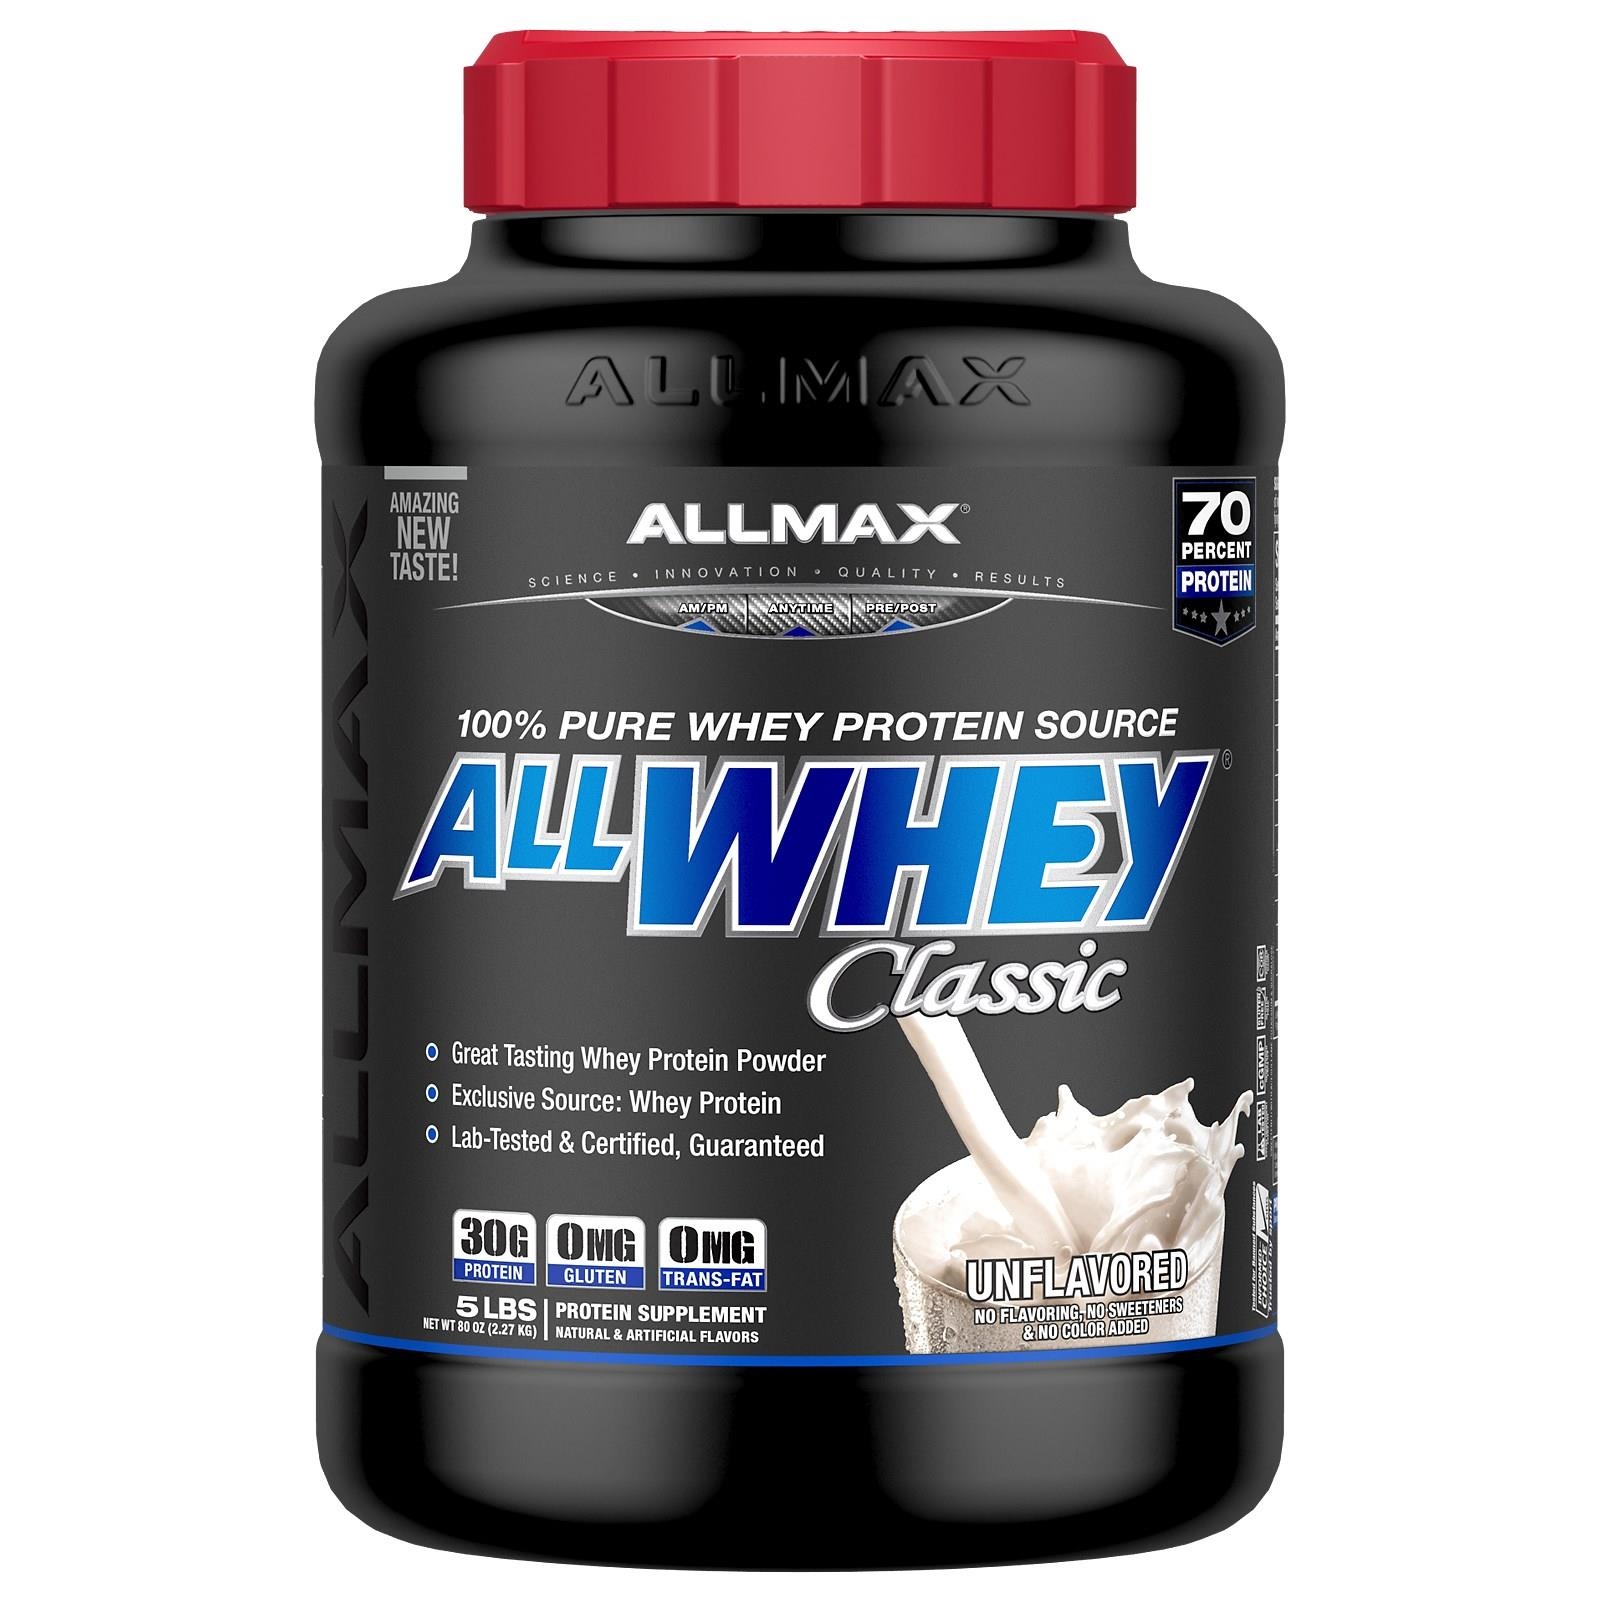 ALL WHEY CLASSIC UNFLAVORED